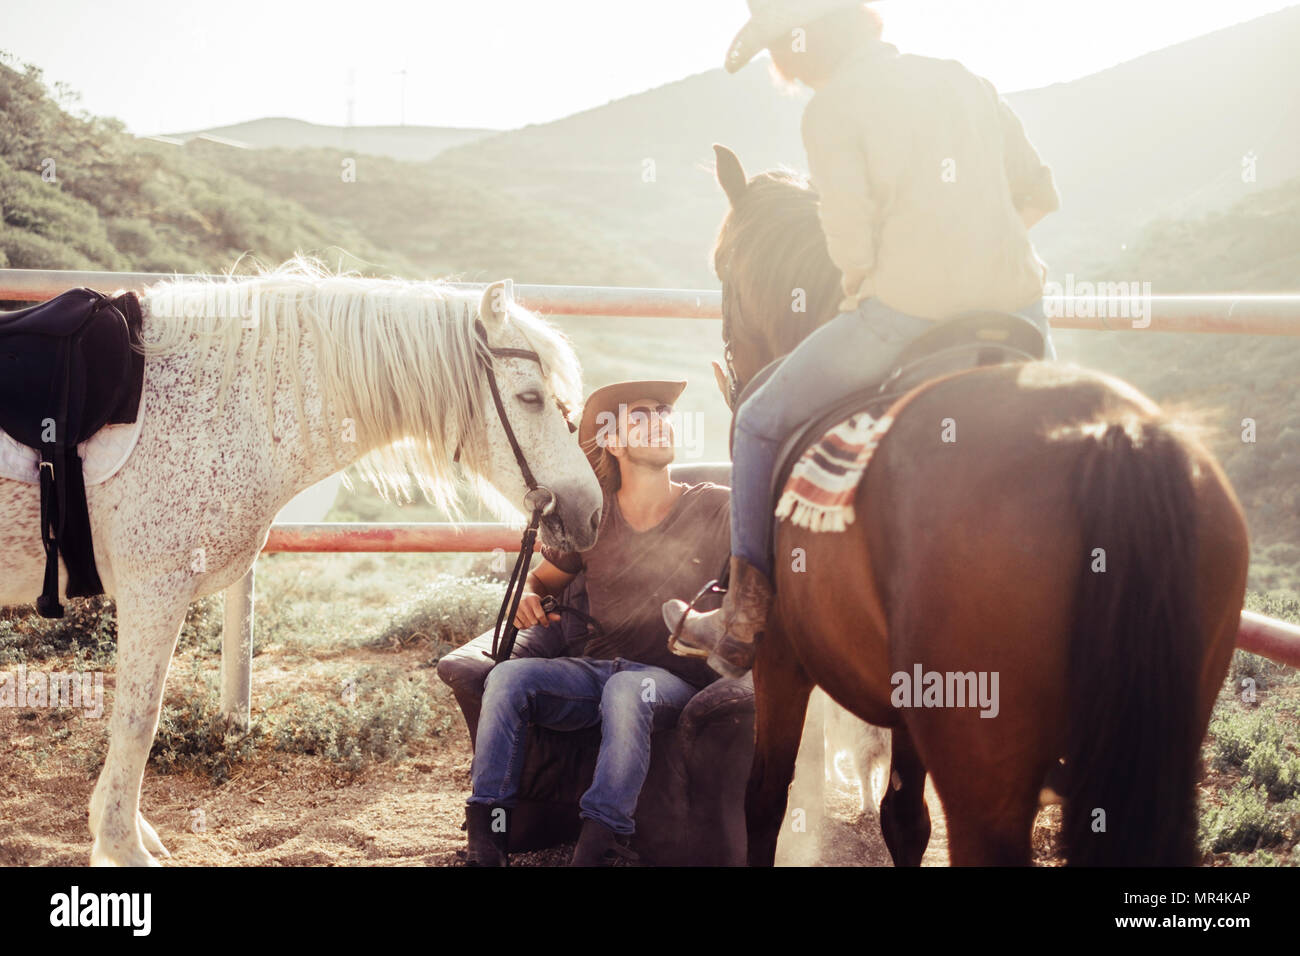 countryside and horse farm daily scene with sun and backlight. two horses and two rider man and woman smile for a beautiful day in the nature. friends - Stock Image